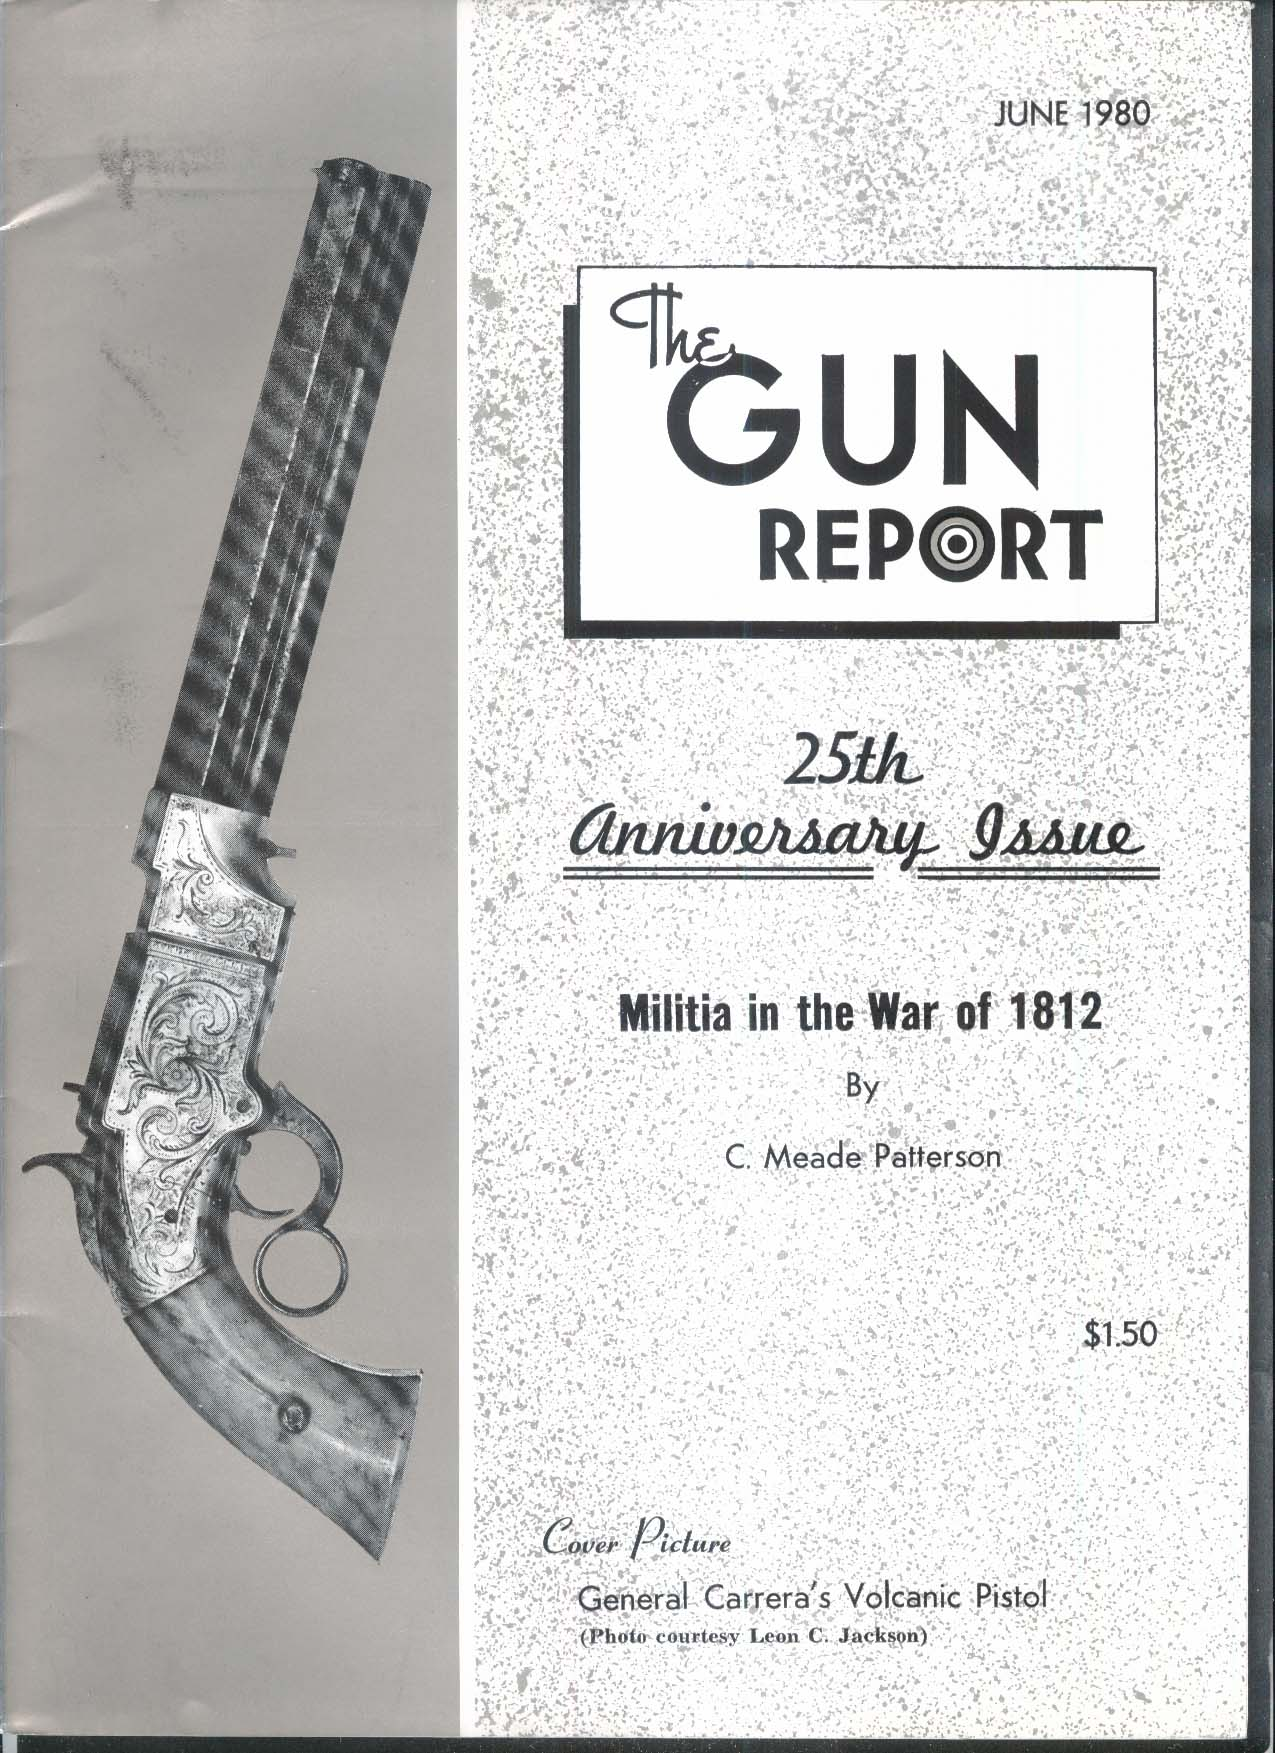 GUN REPORT General Carrera Volcanic Pistol War of 1812 Bowie + 6 1980